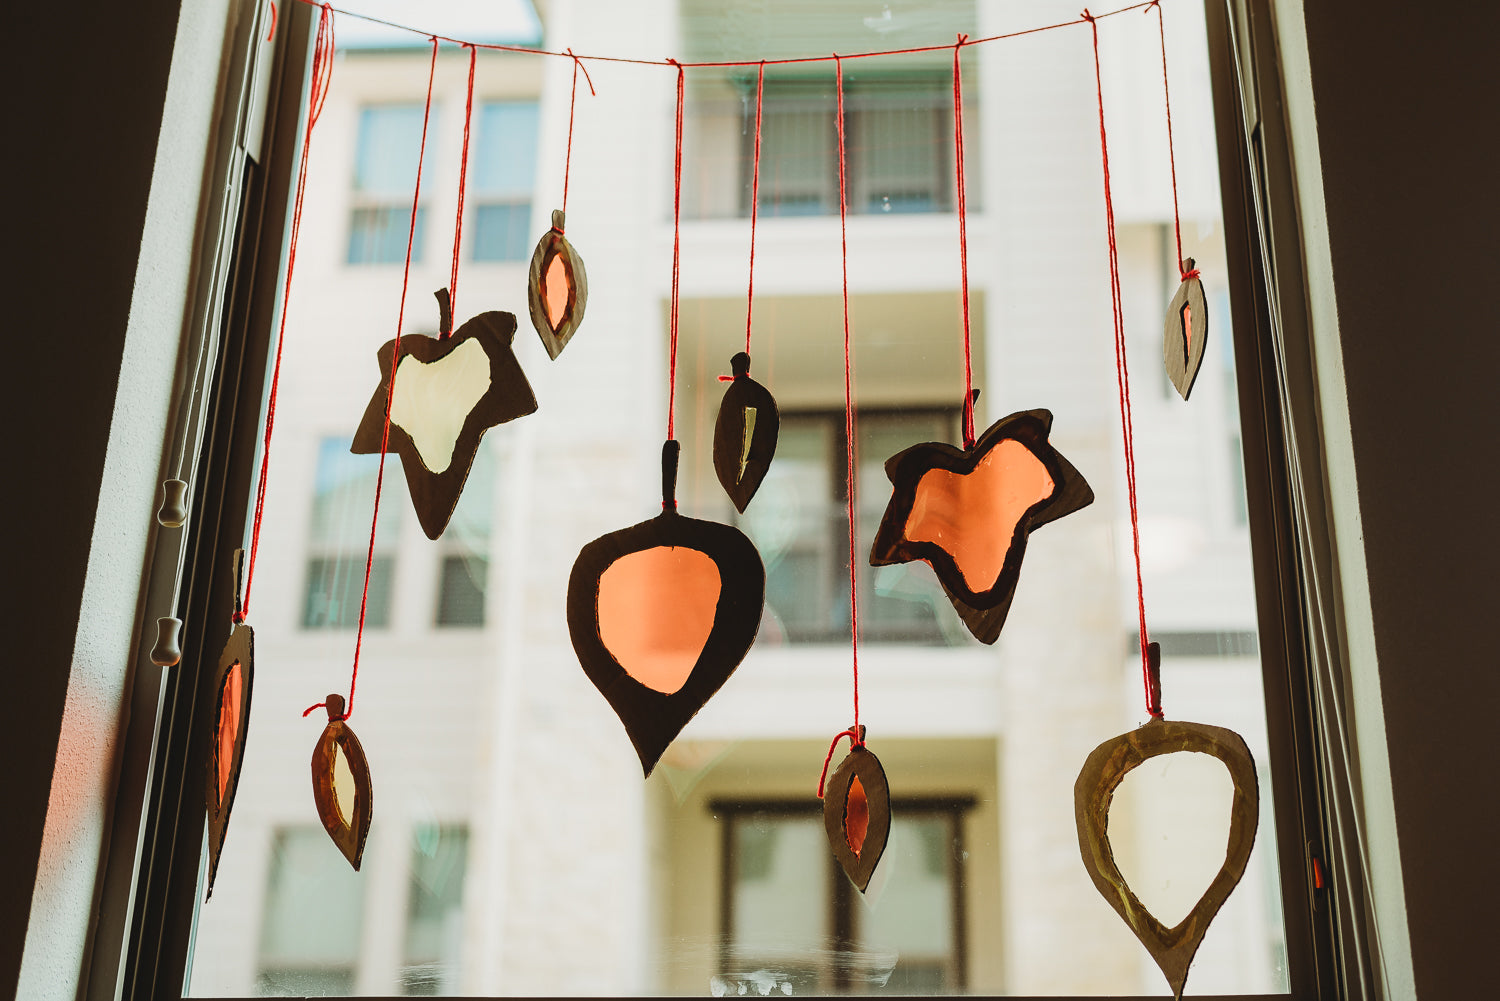 Series of cardboard leaves hanging from red yarn in a window.